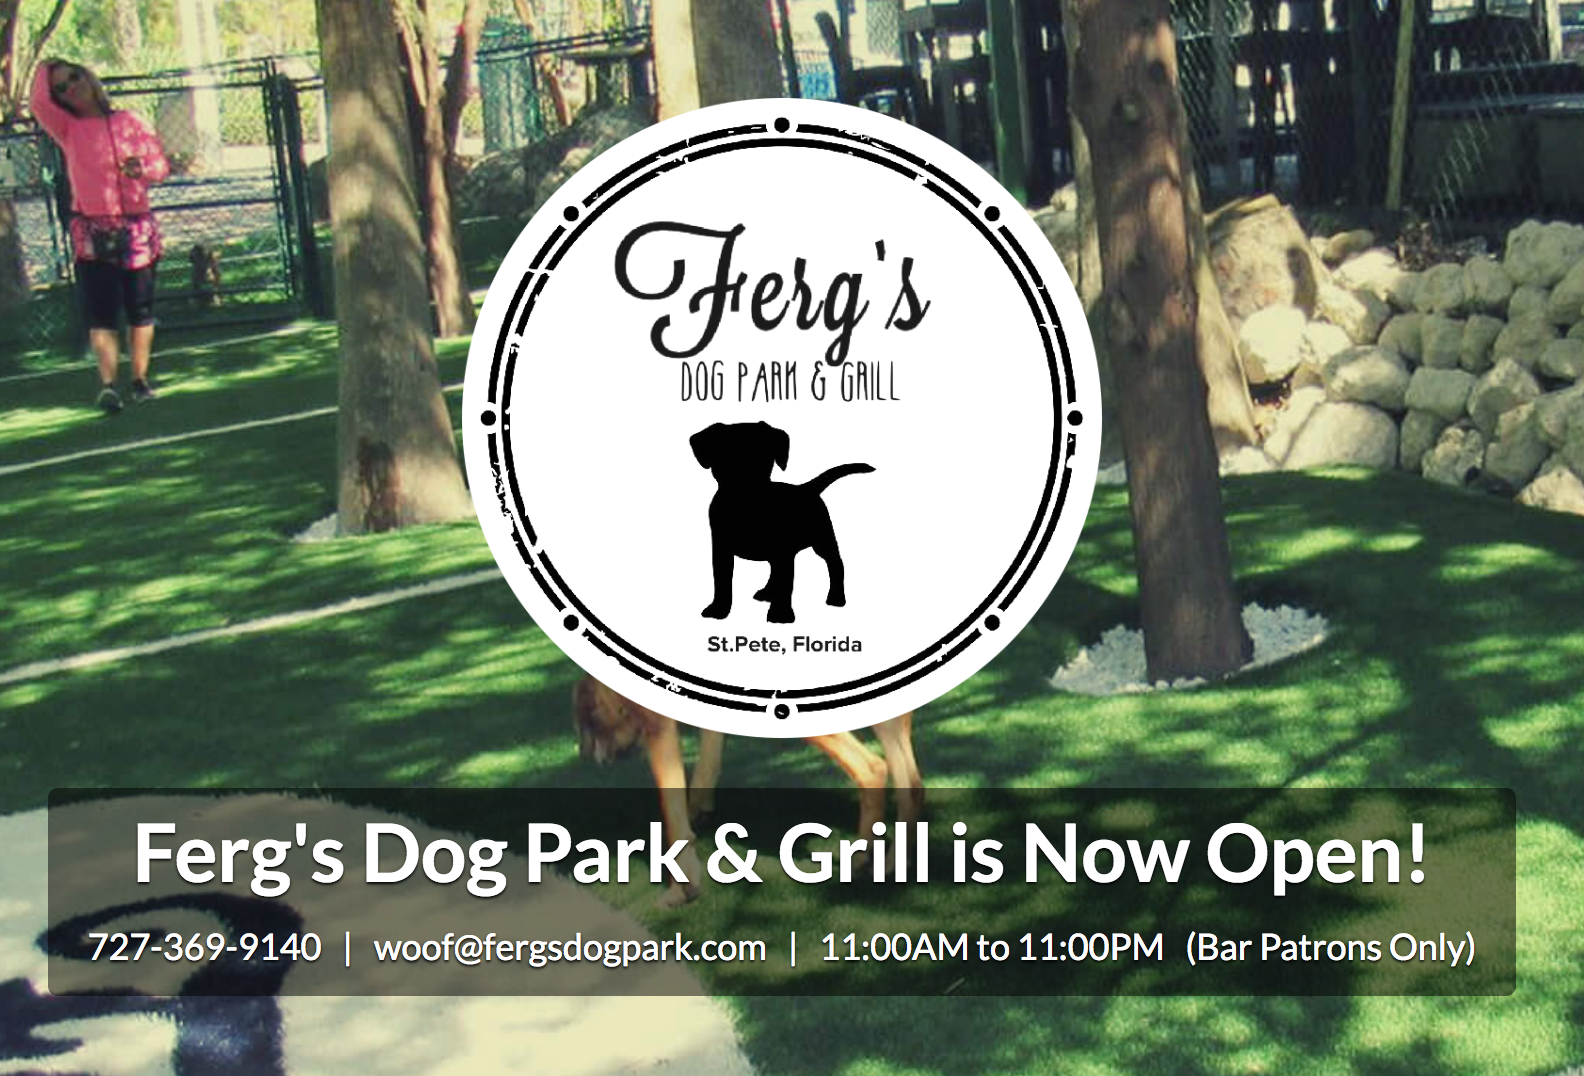 Ferg S Dog Park Grill Is A Popular Dog Friendly Restaurant And Bar In Downtown St Petersburg It Has Its Own Dog Park Where Dog Park Dog Beach Dog Friends